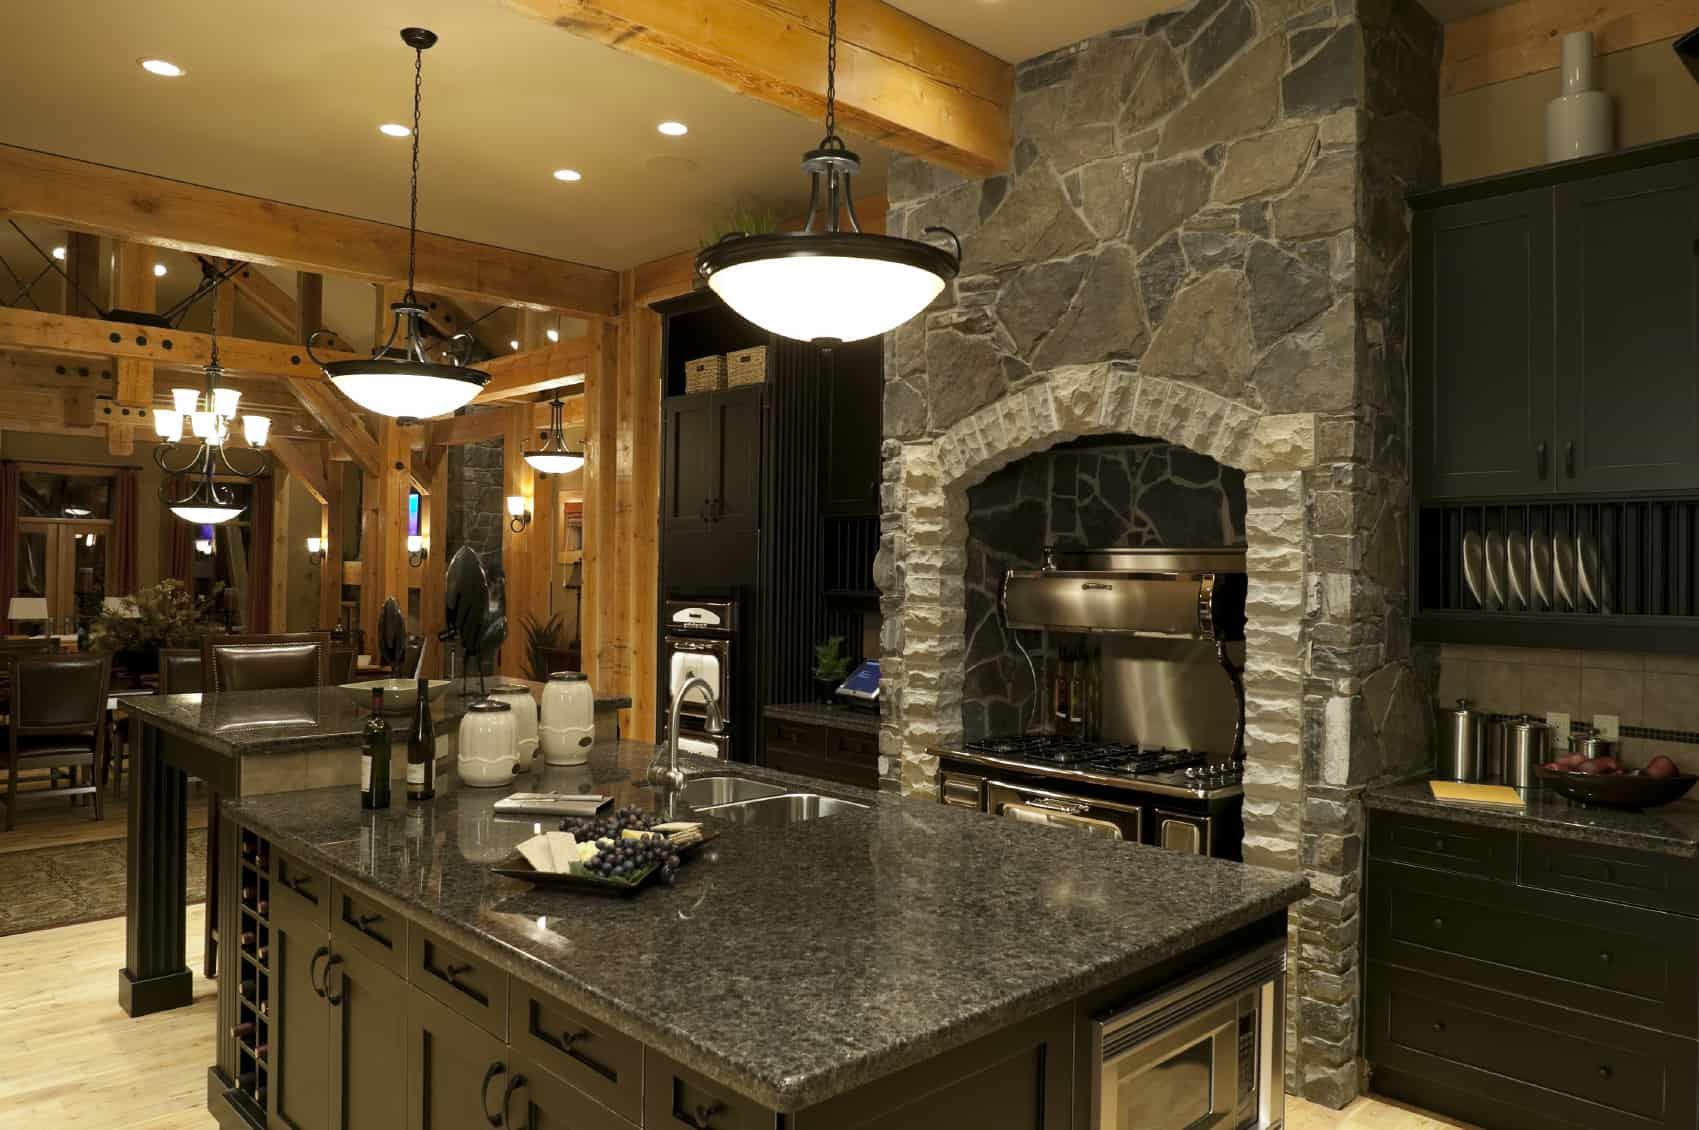 Stunning luxury kitchen with black cabinets, countertops all around a gray flagstone fireplace. The wood floor is made up of very light wood and there are light wood beams supporting the ceiling. The extensive wood contrasts very nicely with the black cabinets.